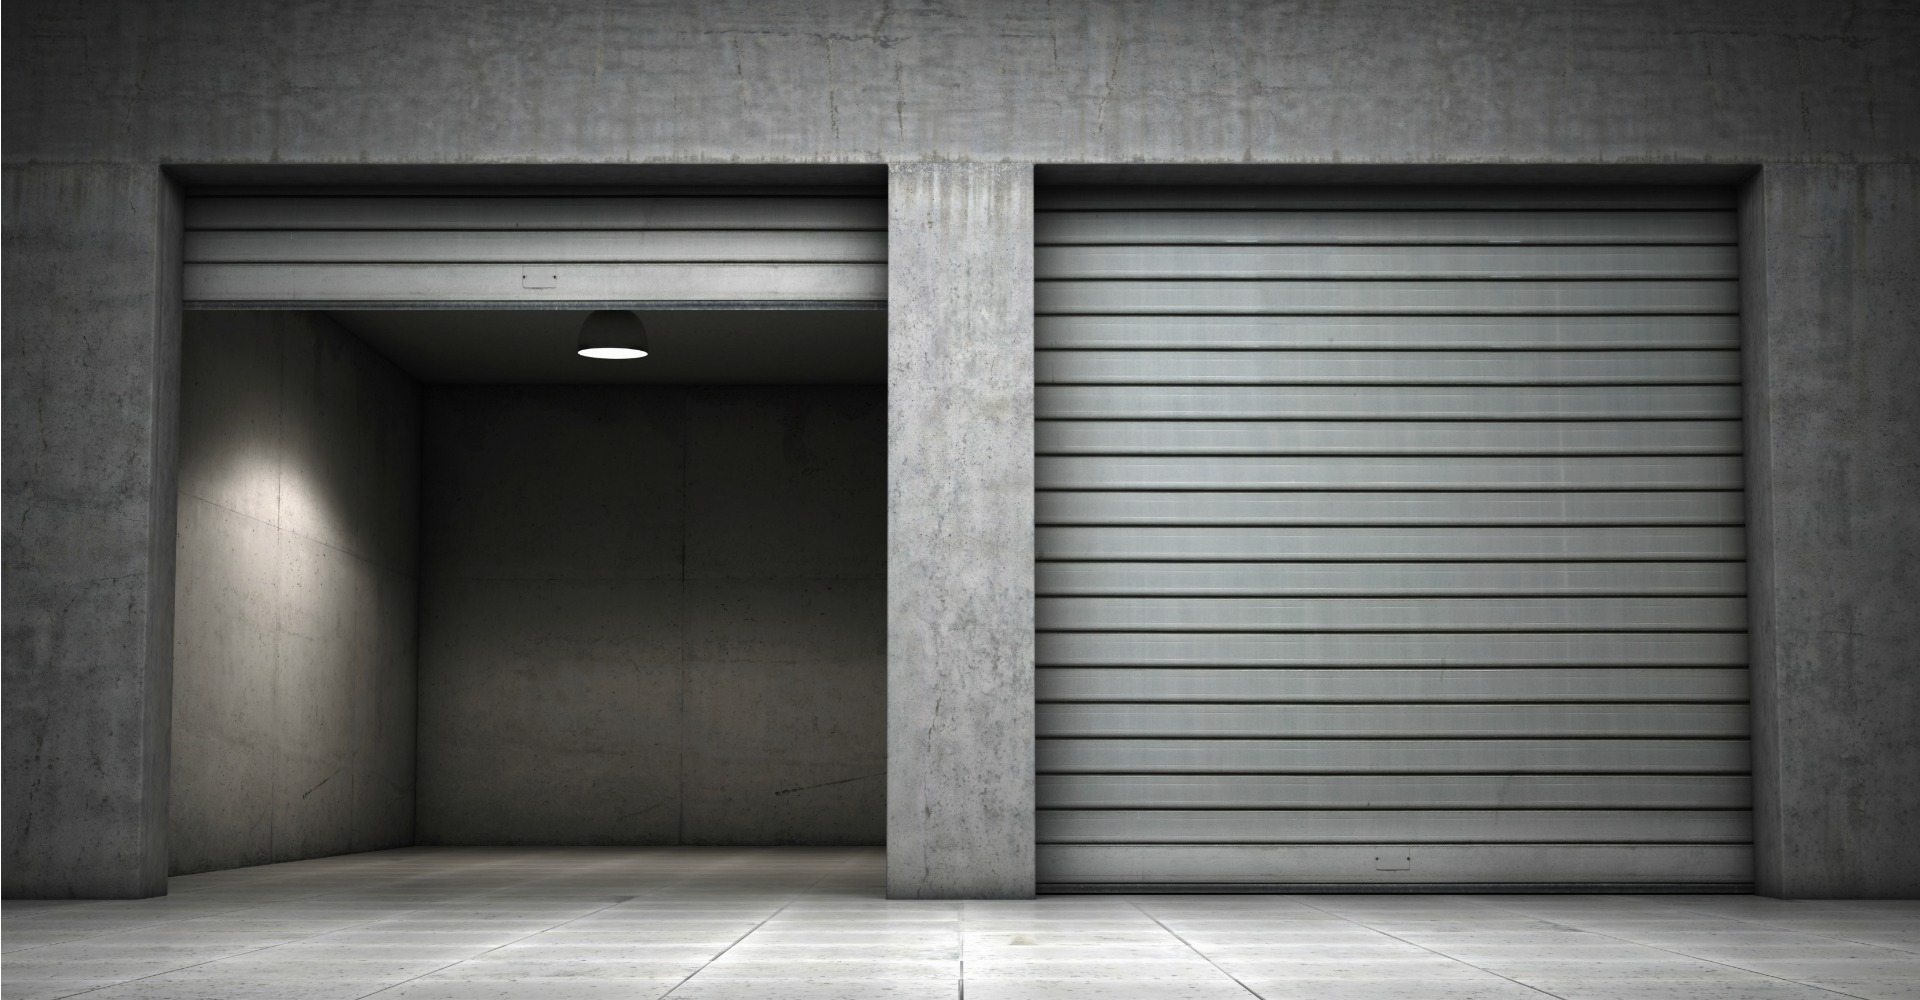 Le Meilleur Warehouse Doors Common Problems And How To Fix Them Ce Mois Ci